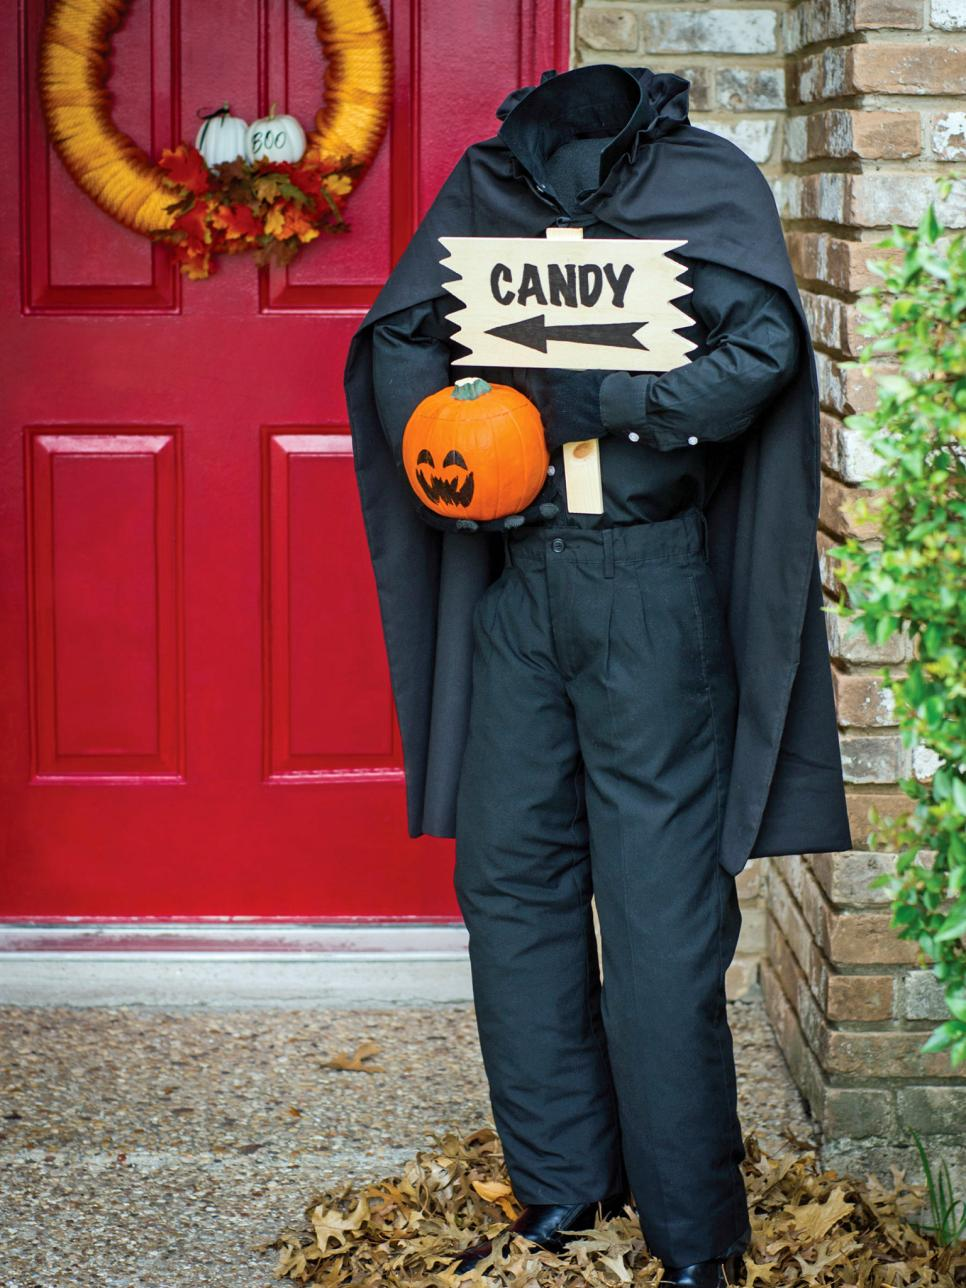 60 diy halloween decorations decorating ideas hgtv - Halloween Garden Decor